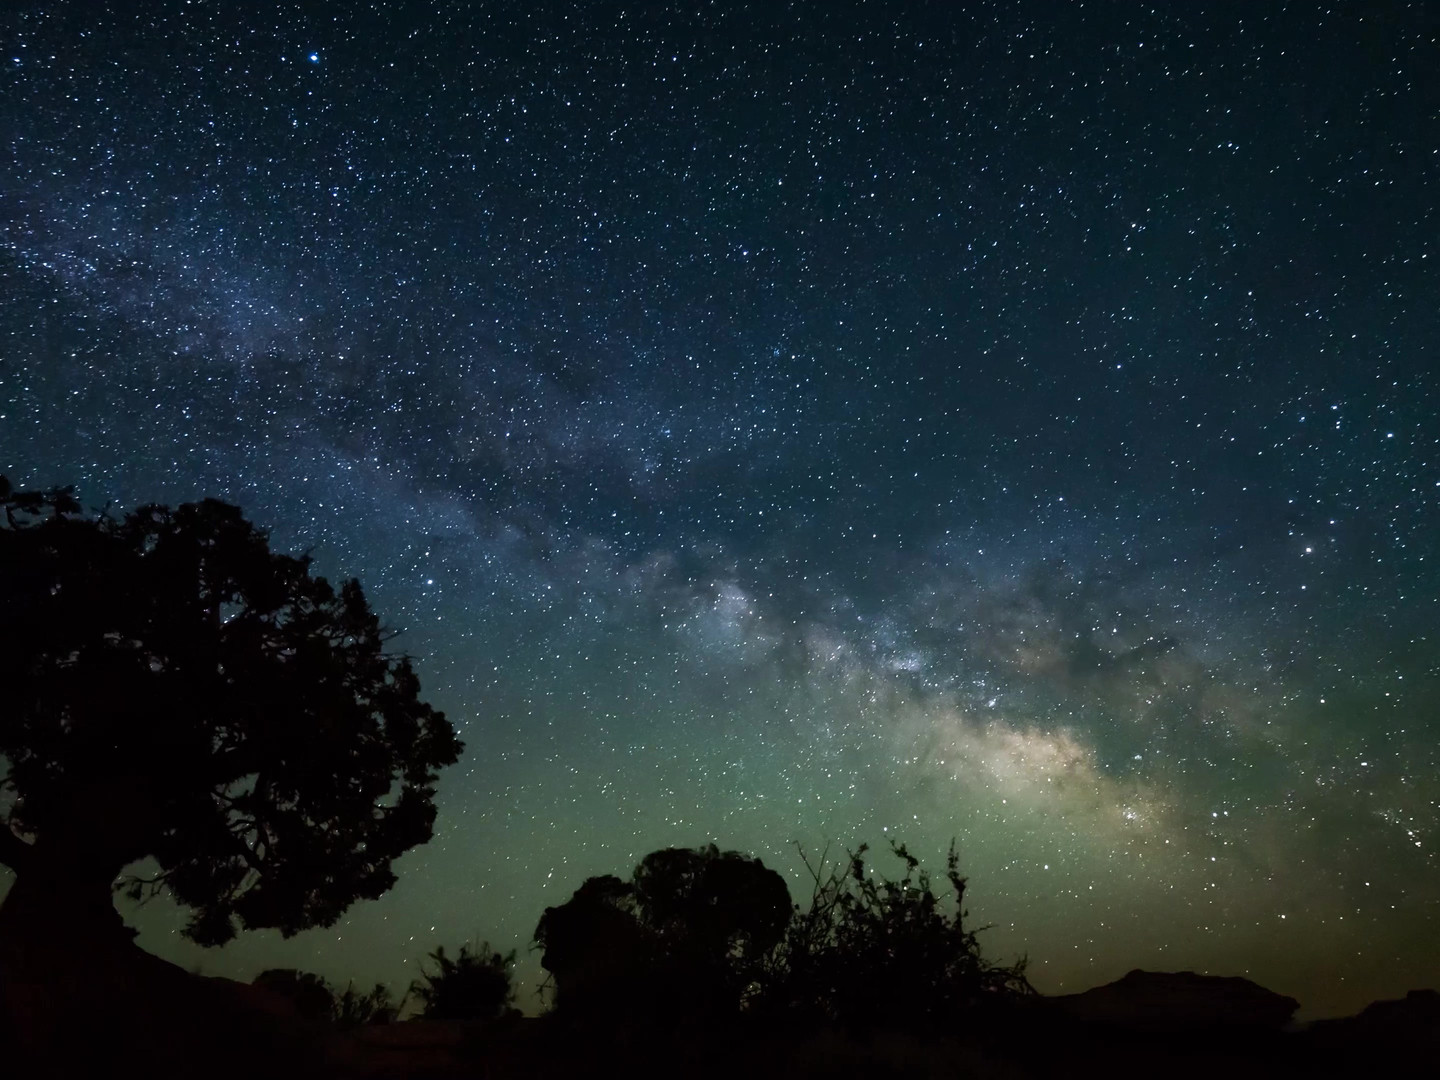 3 AXIS Tracking Shot Milkyway Dead Horse